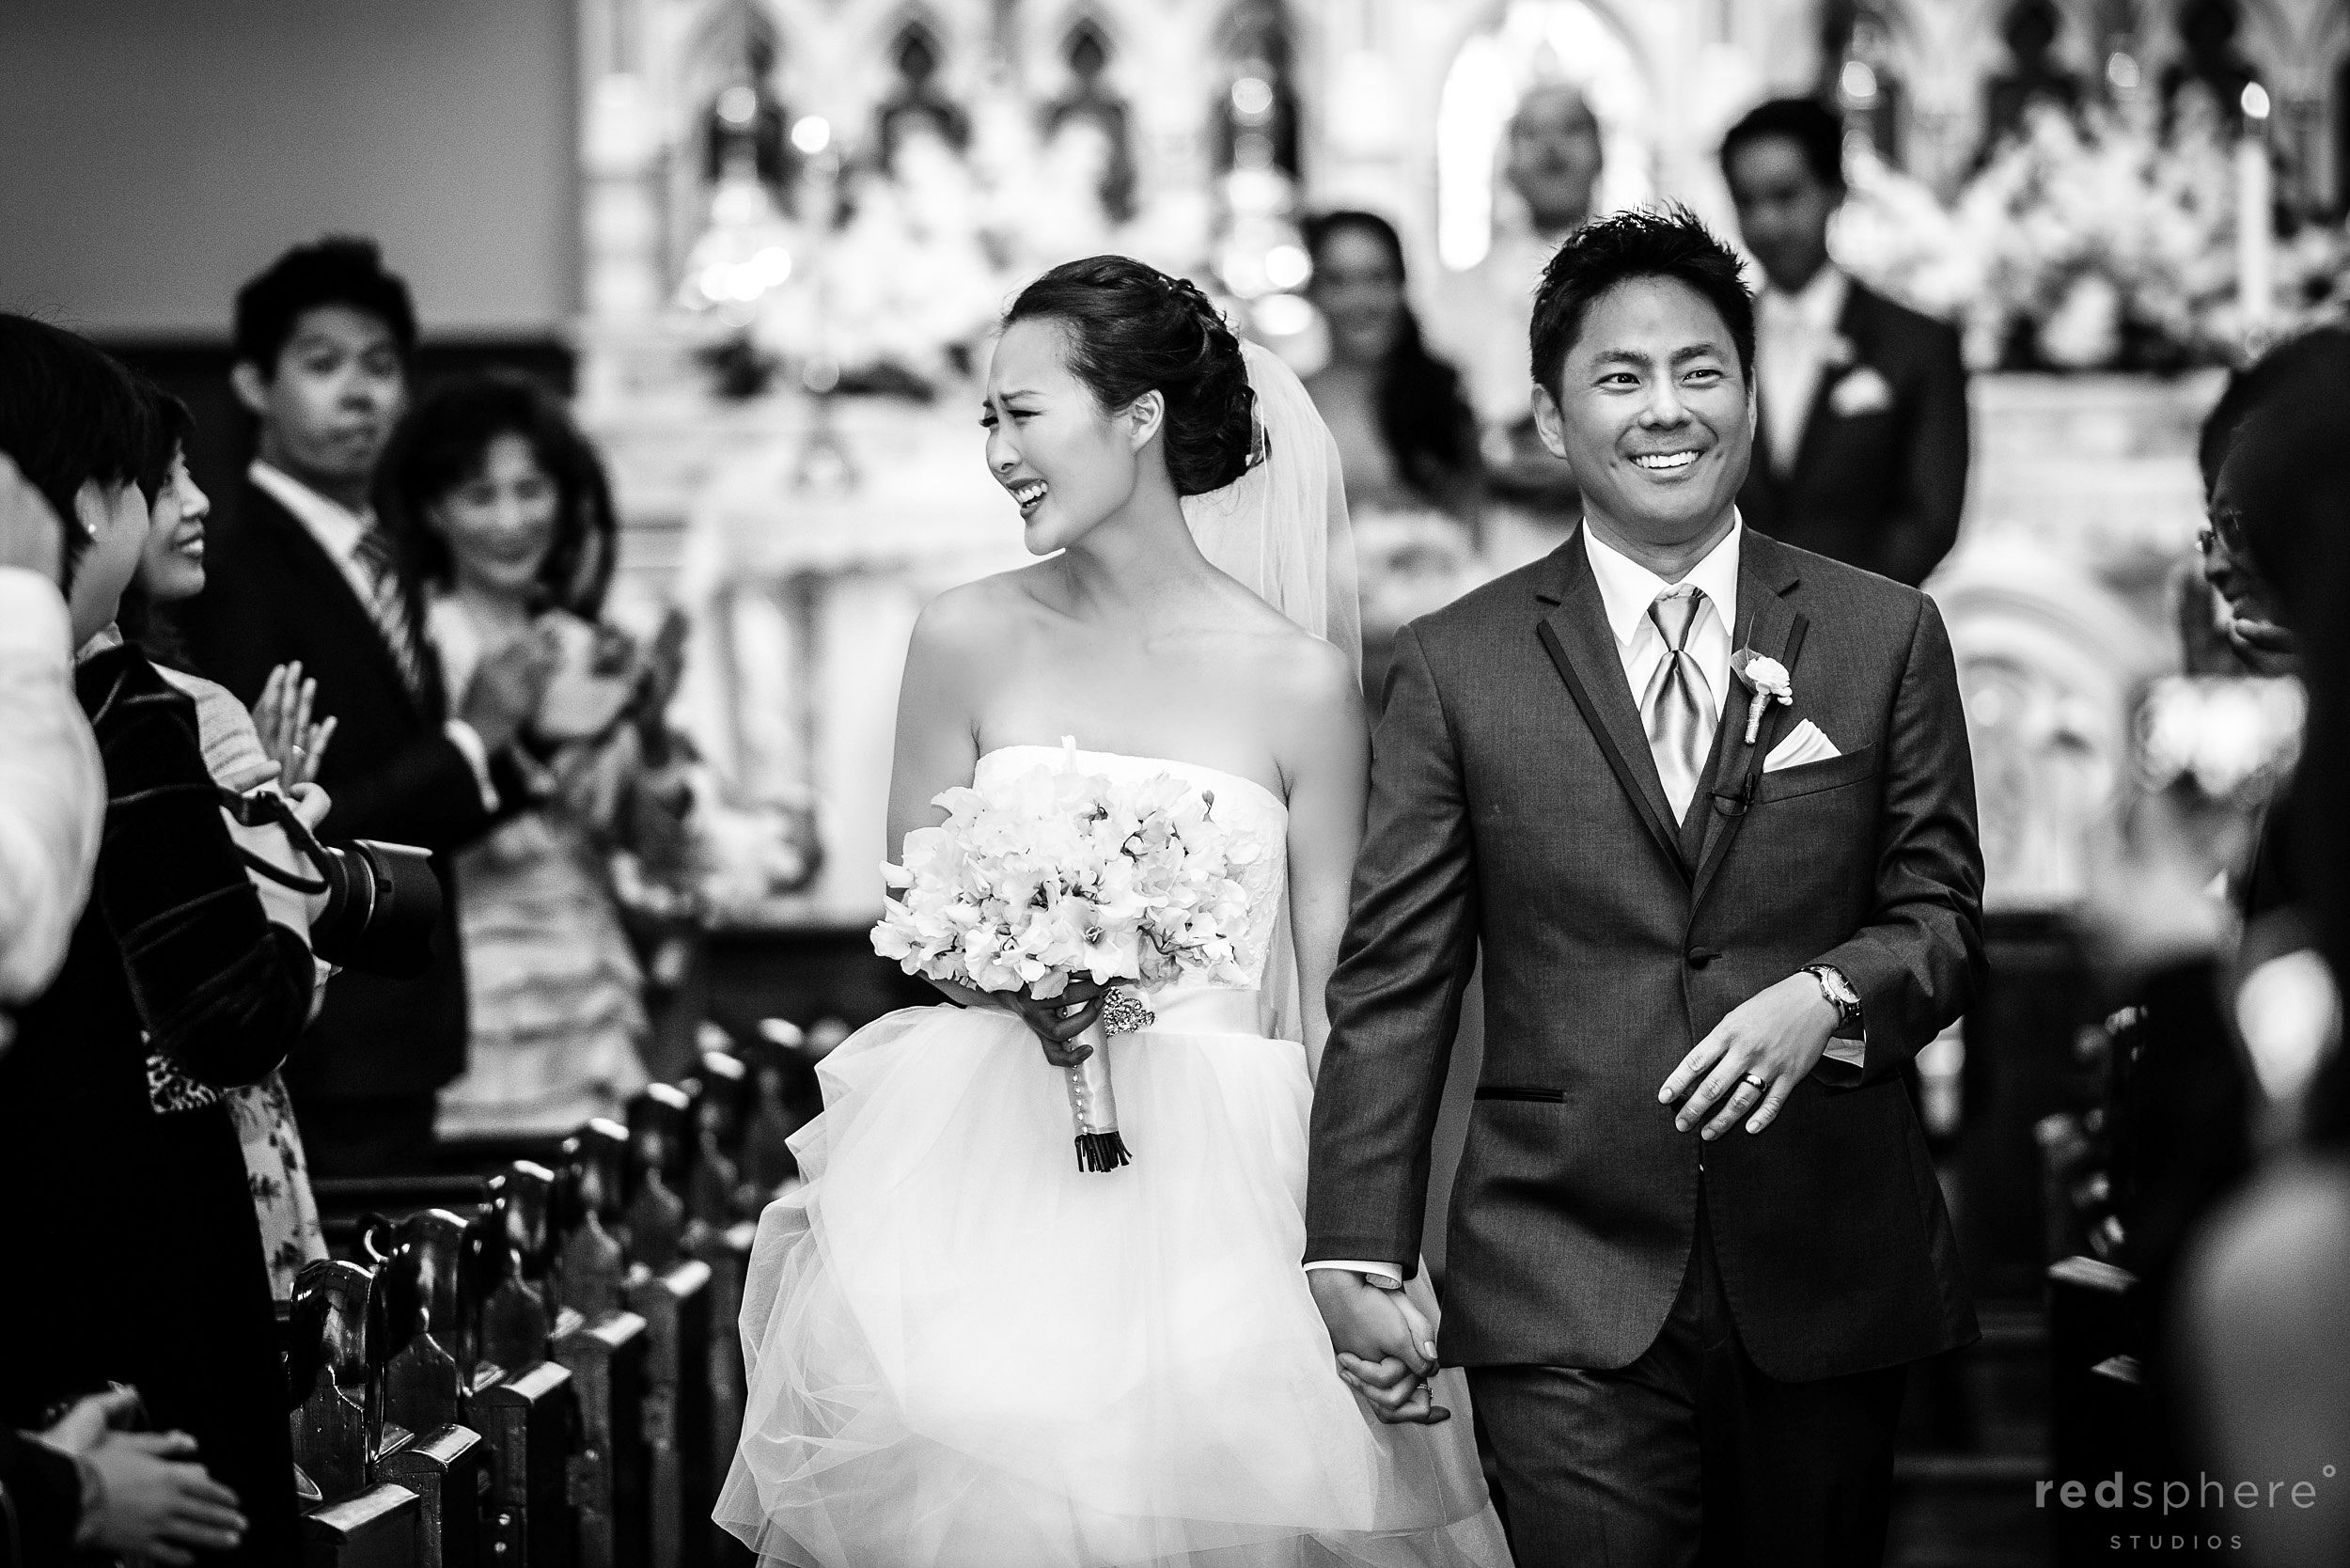 Hand In Hand, Newly Wed Couple Exiting Ceremony, Black and White